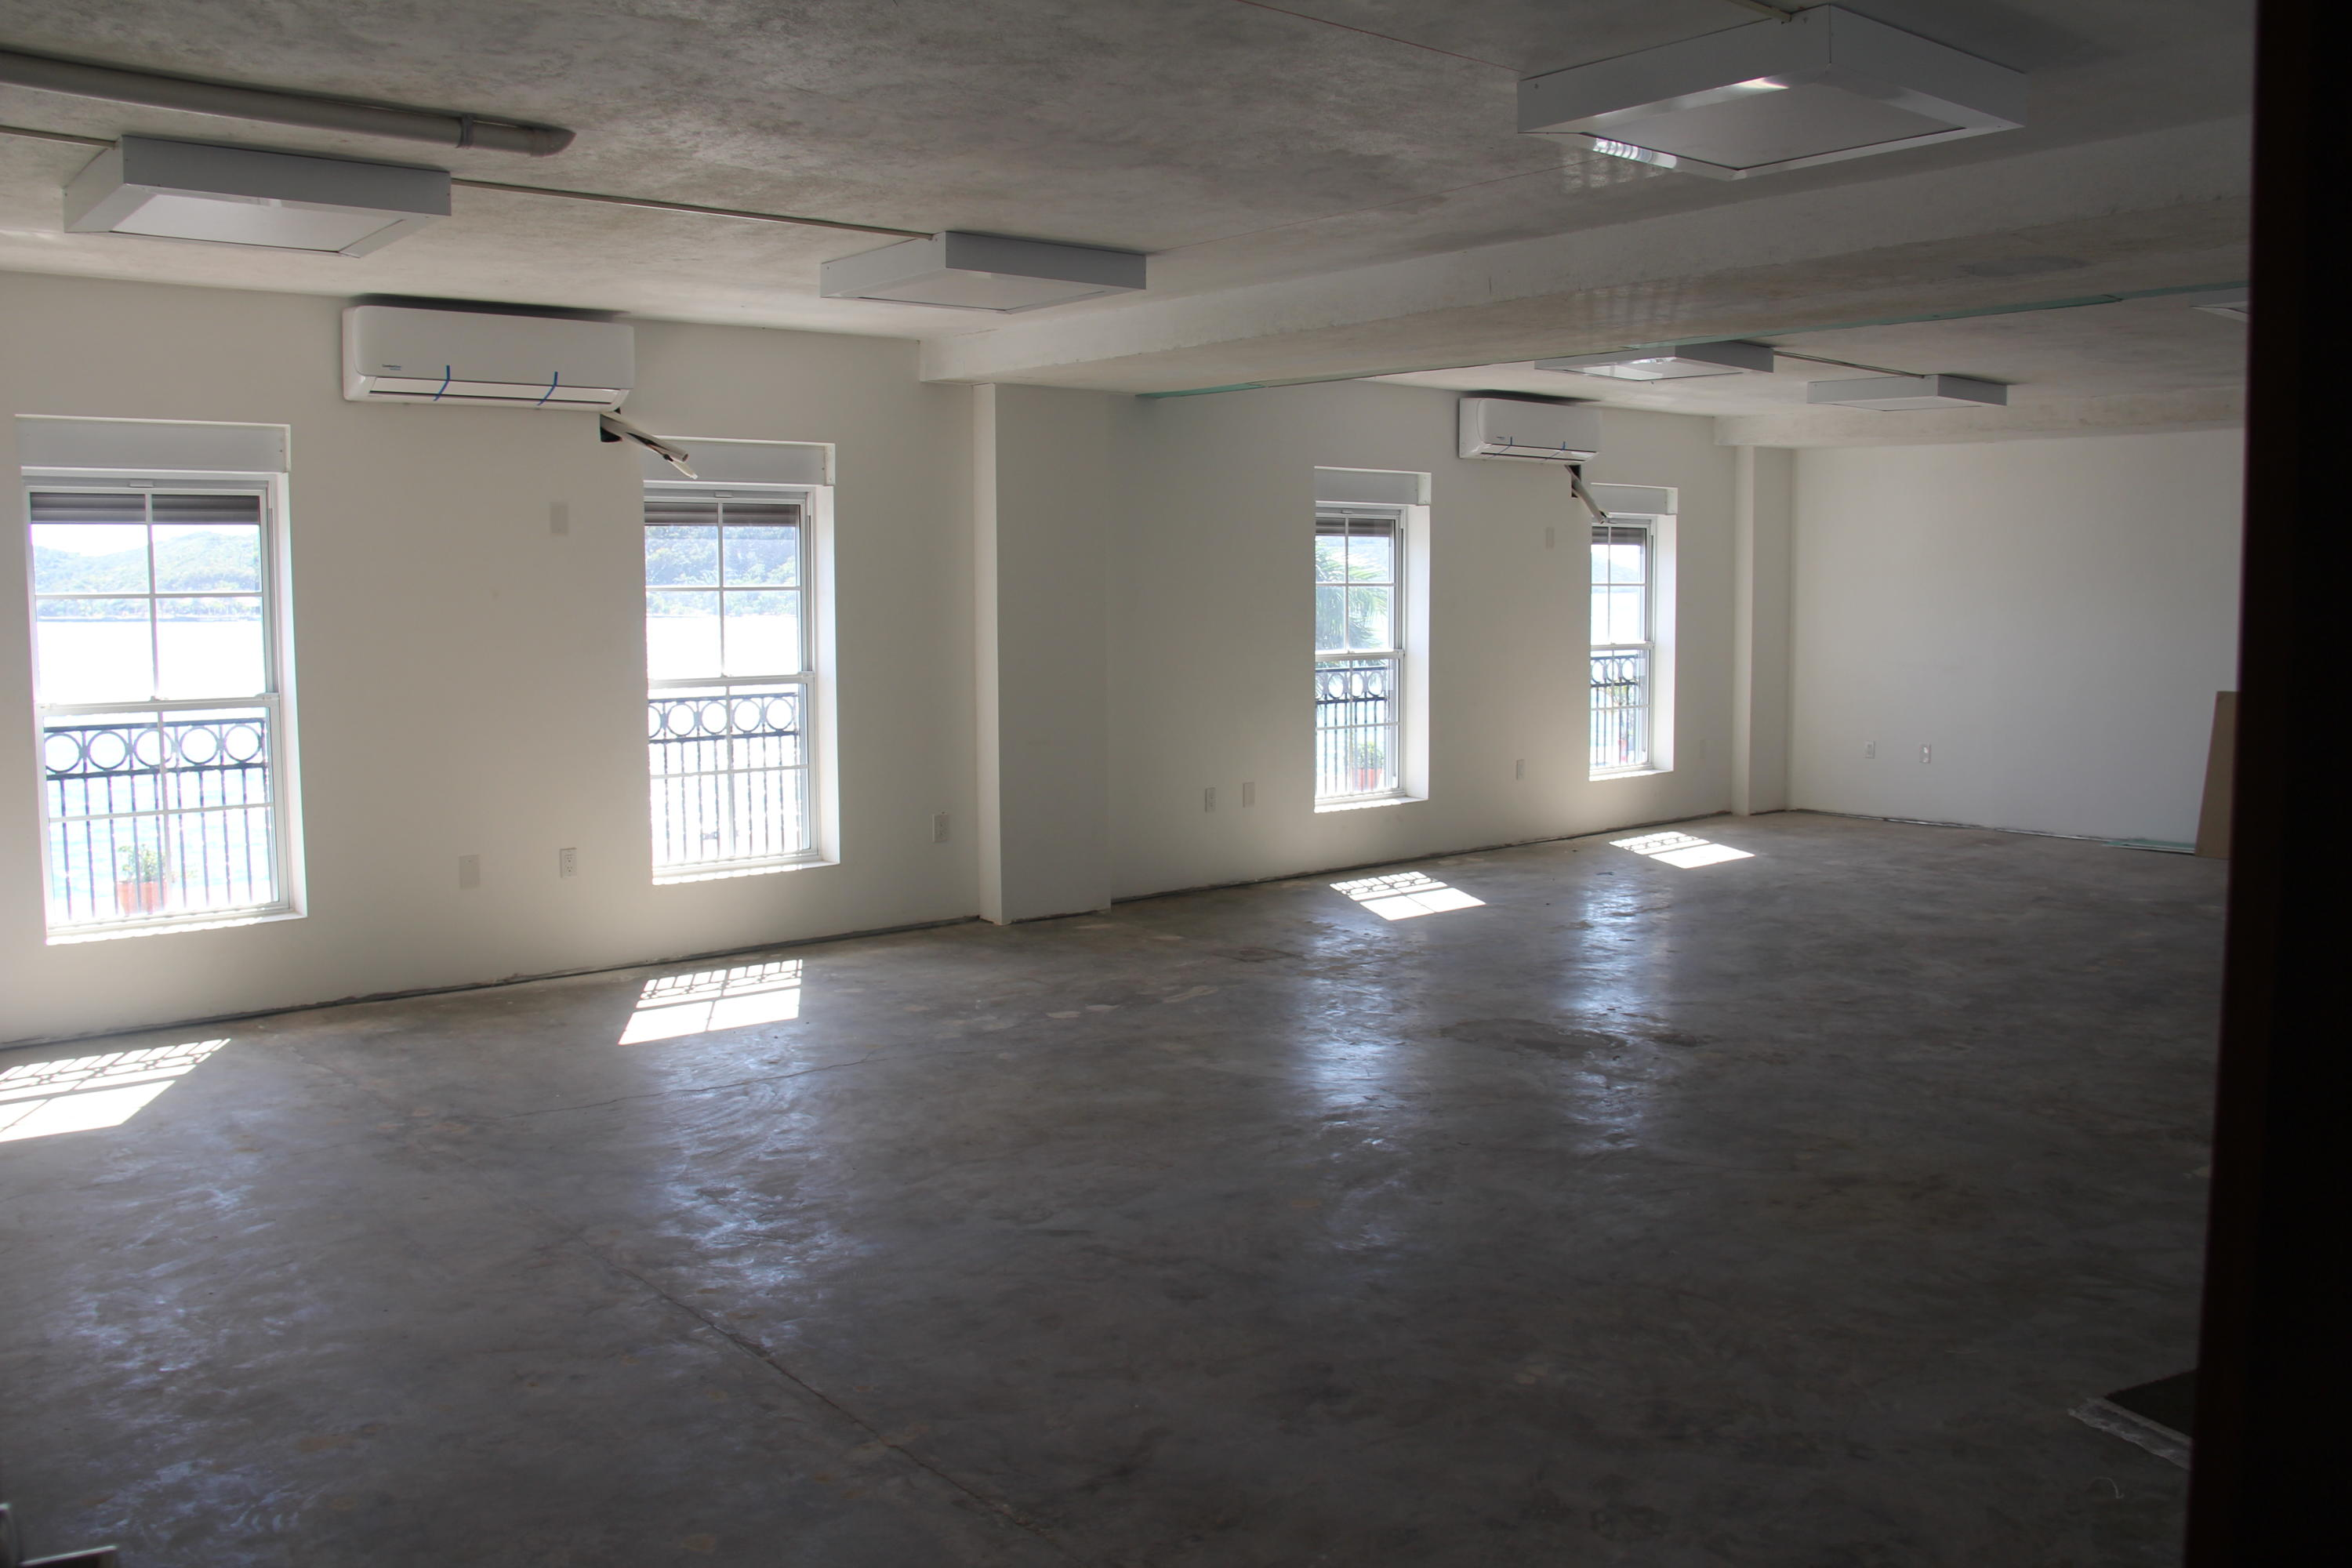 Commercial for Rent at 7/8 #205 Curacao Gade KPS 7/8 #205 Curacao Gade KPS St Thomas, Virgin Islands 00802 United States Virgin Islands